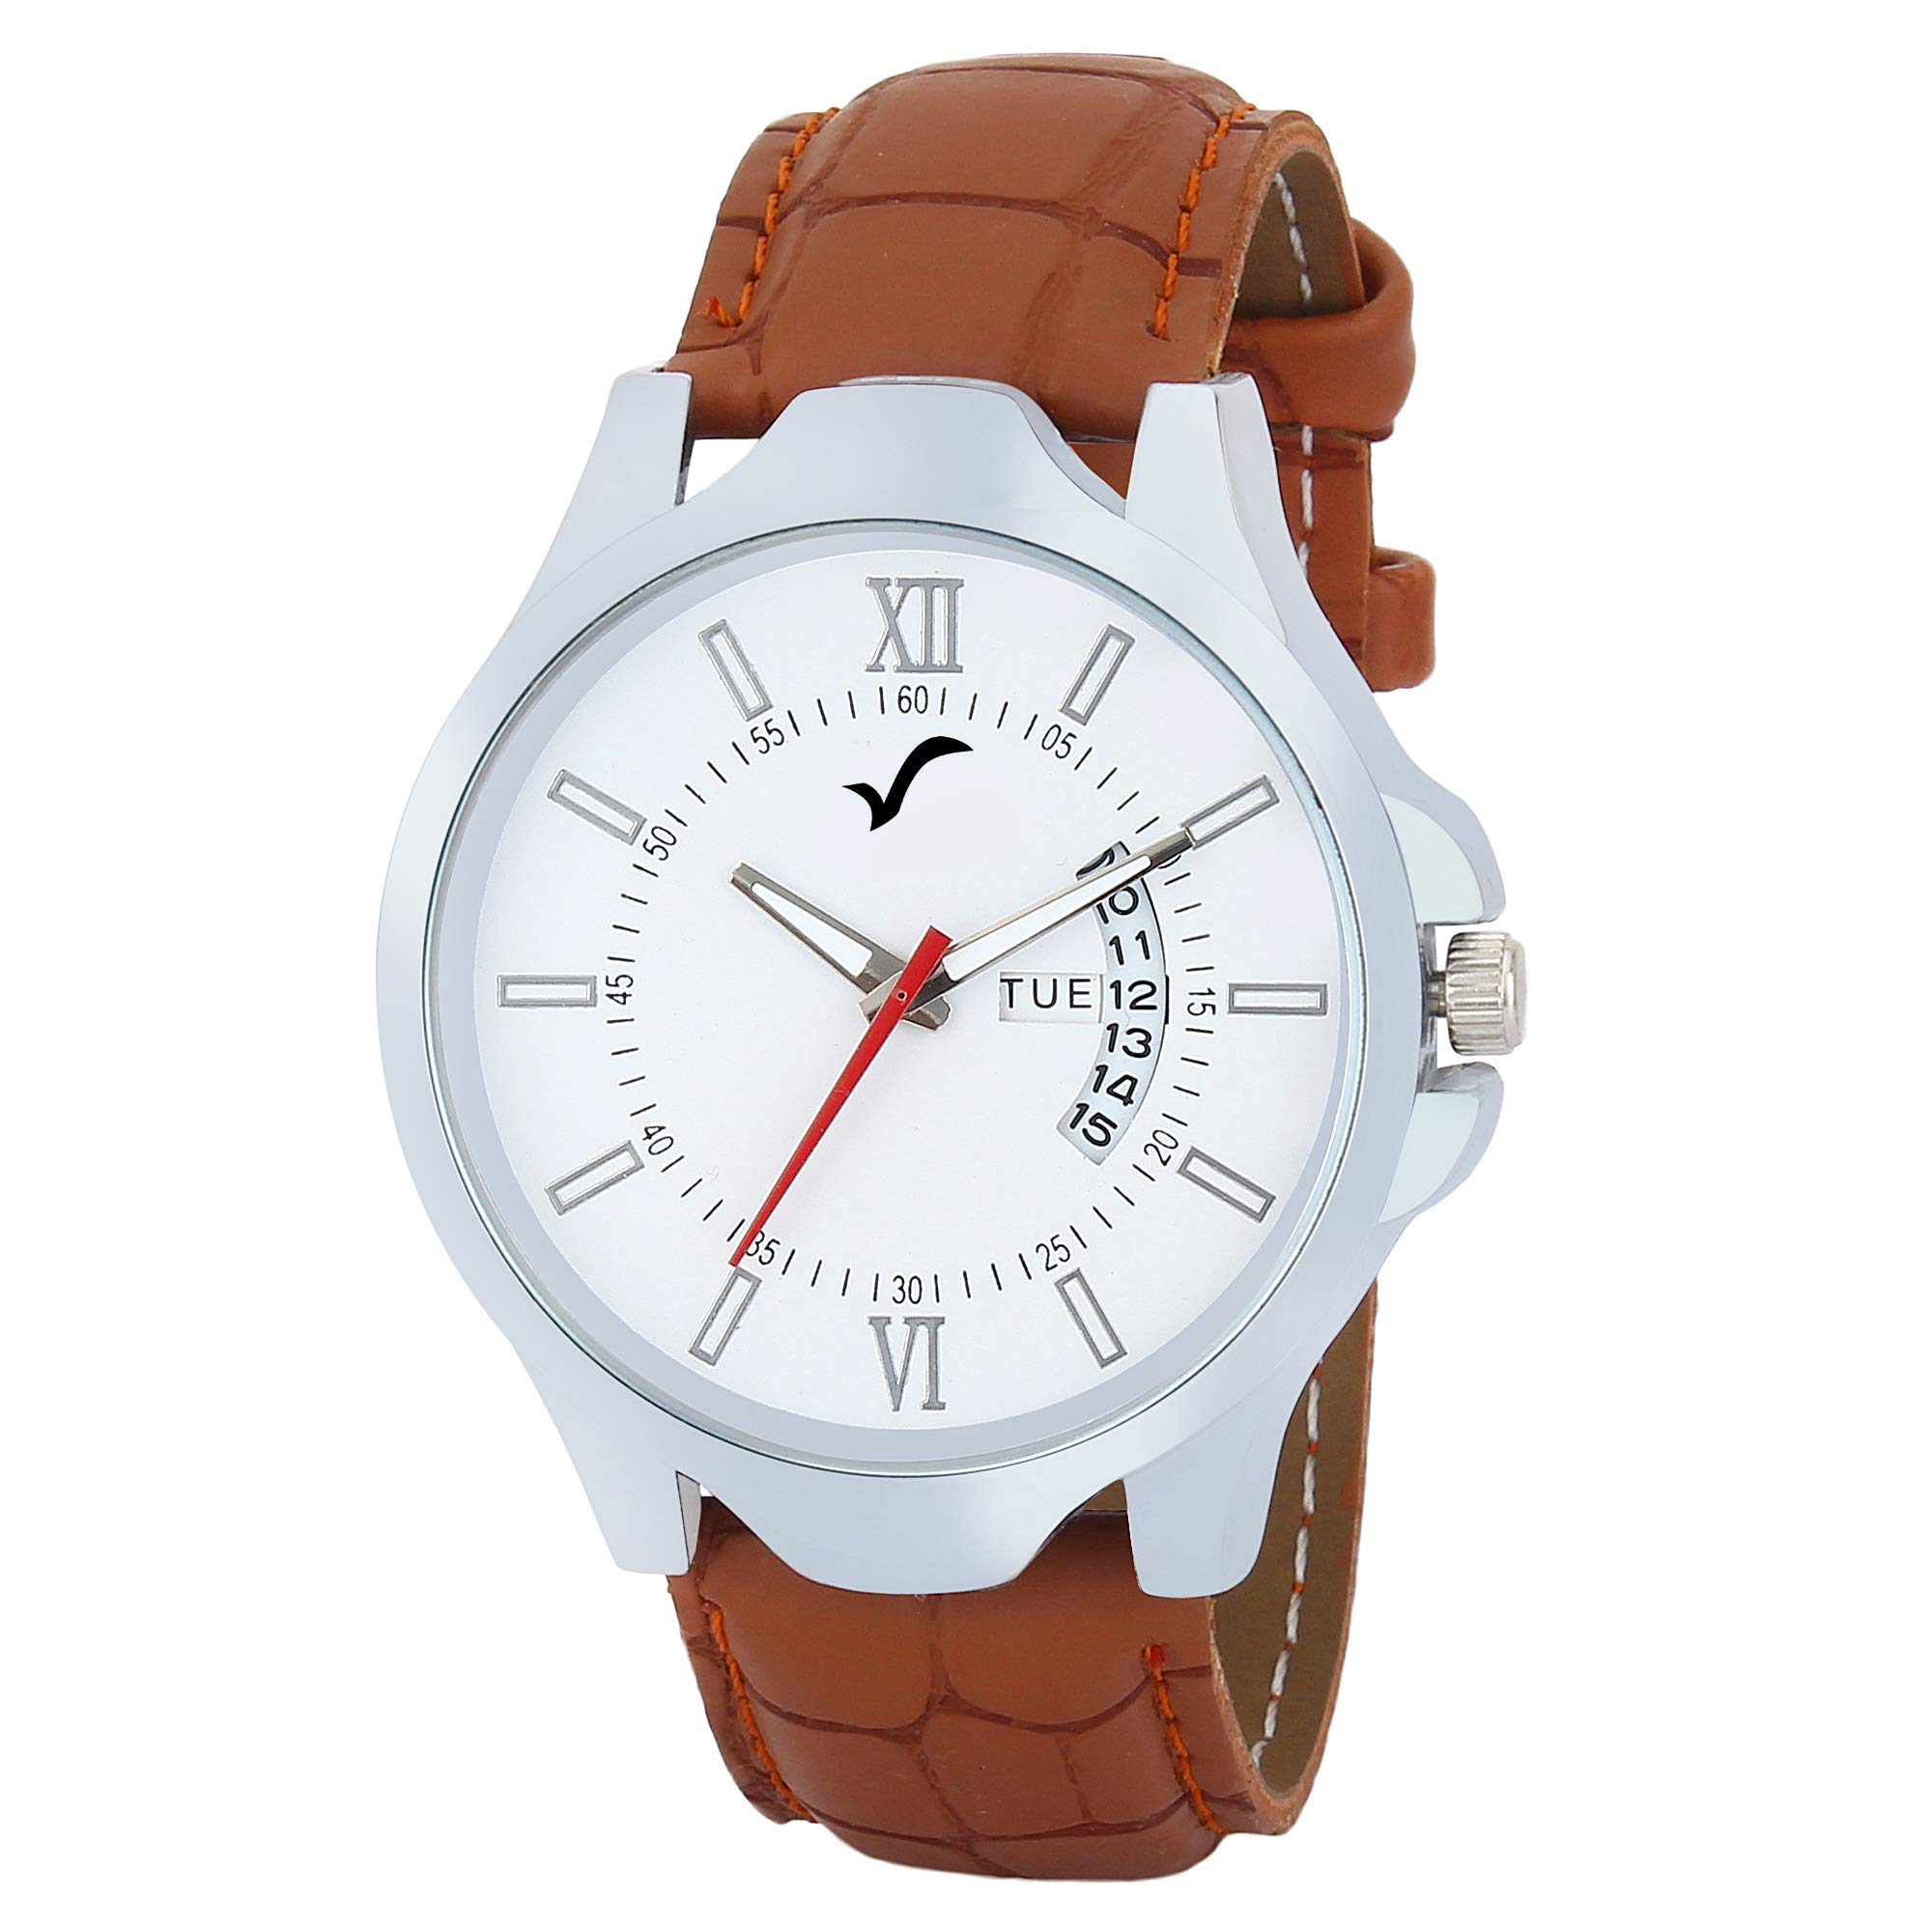 WRIGHTRACK Exclusive Quartz Movement Leather Strap Day & Date White Dial Analogue Men's and Boy's Wrist Watch (WT516) product image